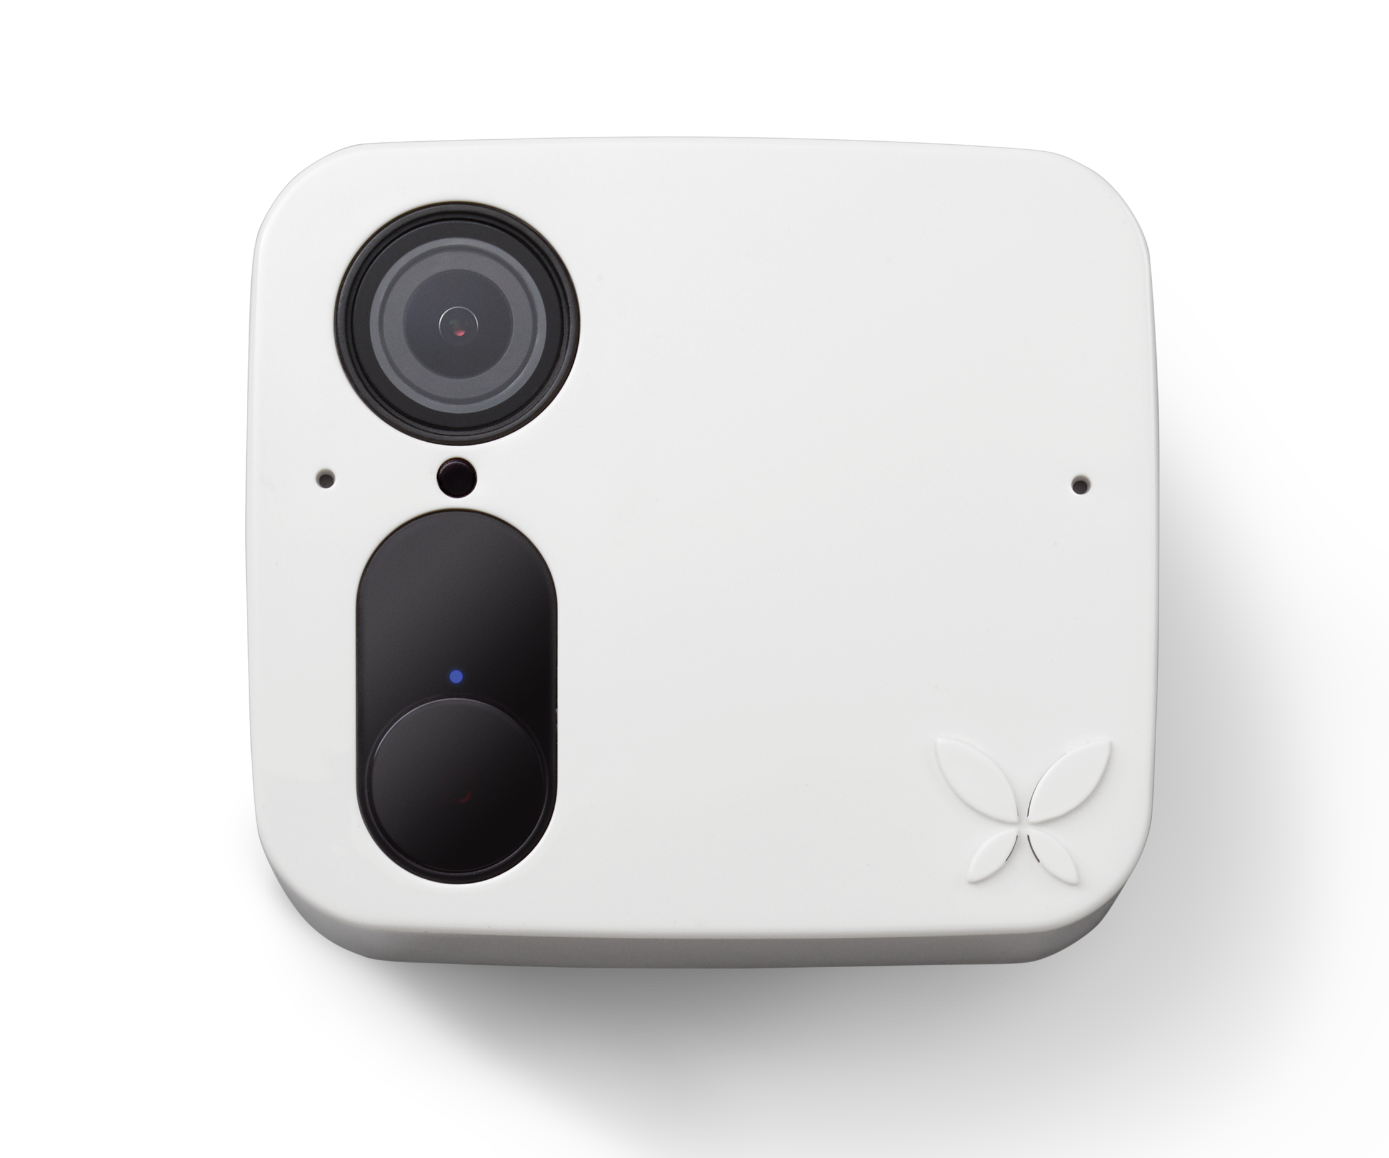 Ooma Wireless Smart Camera image